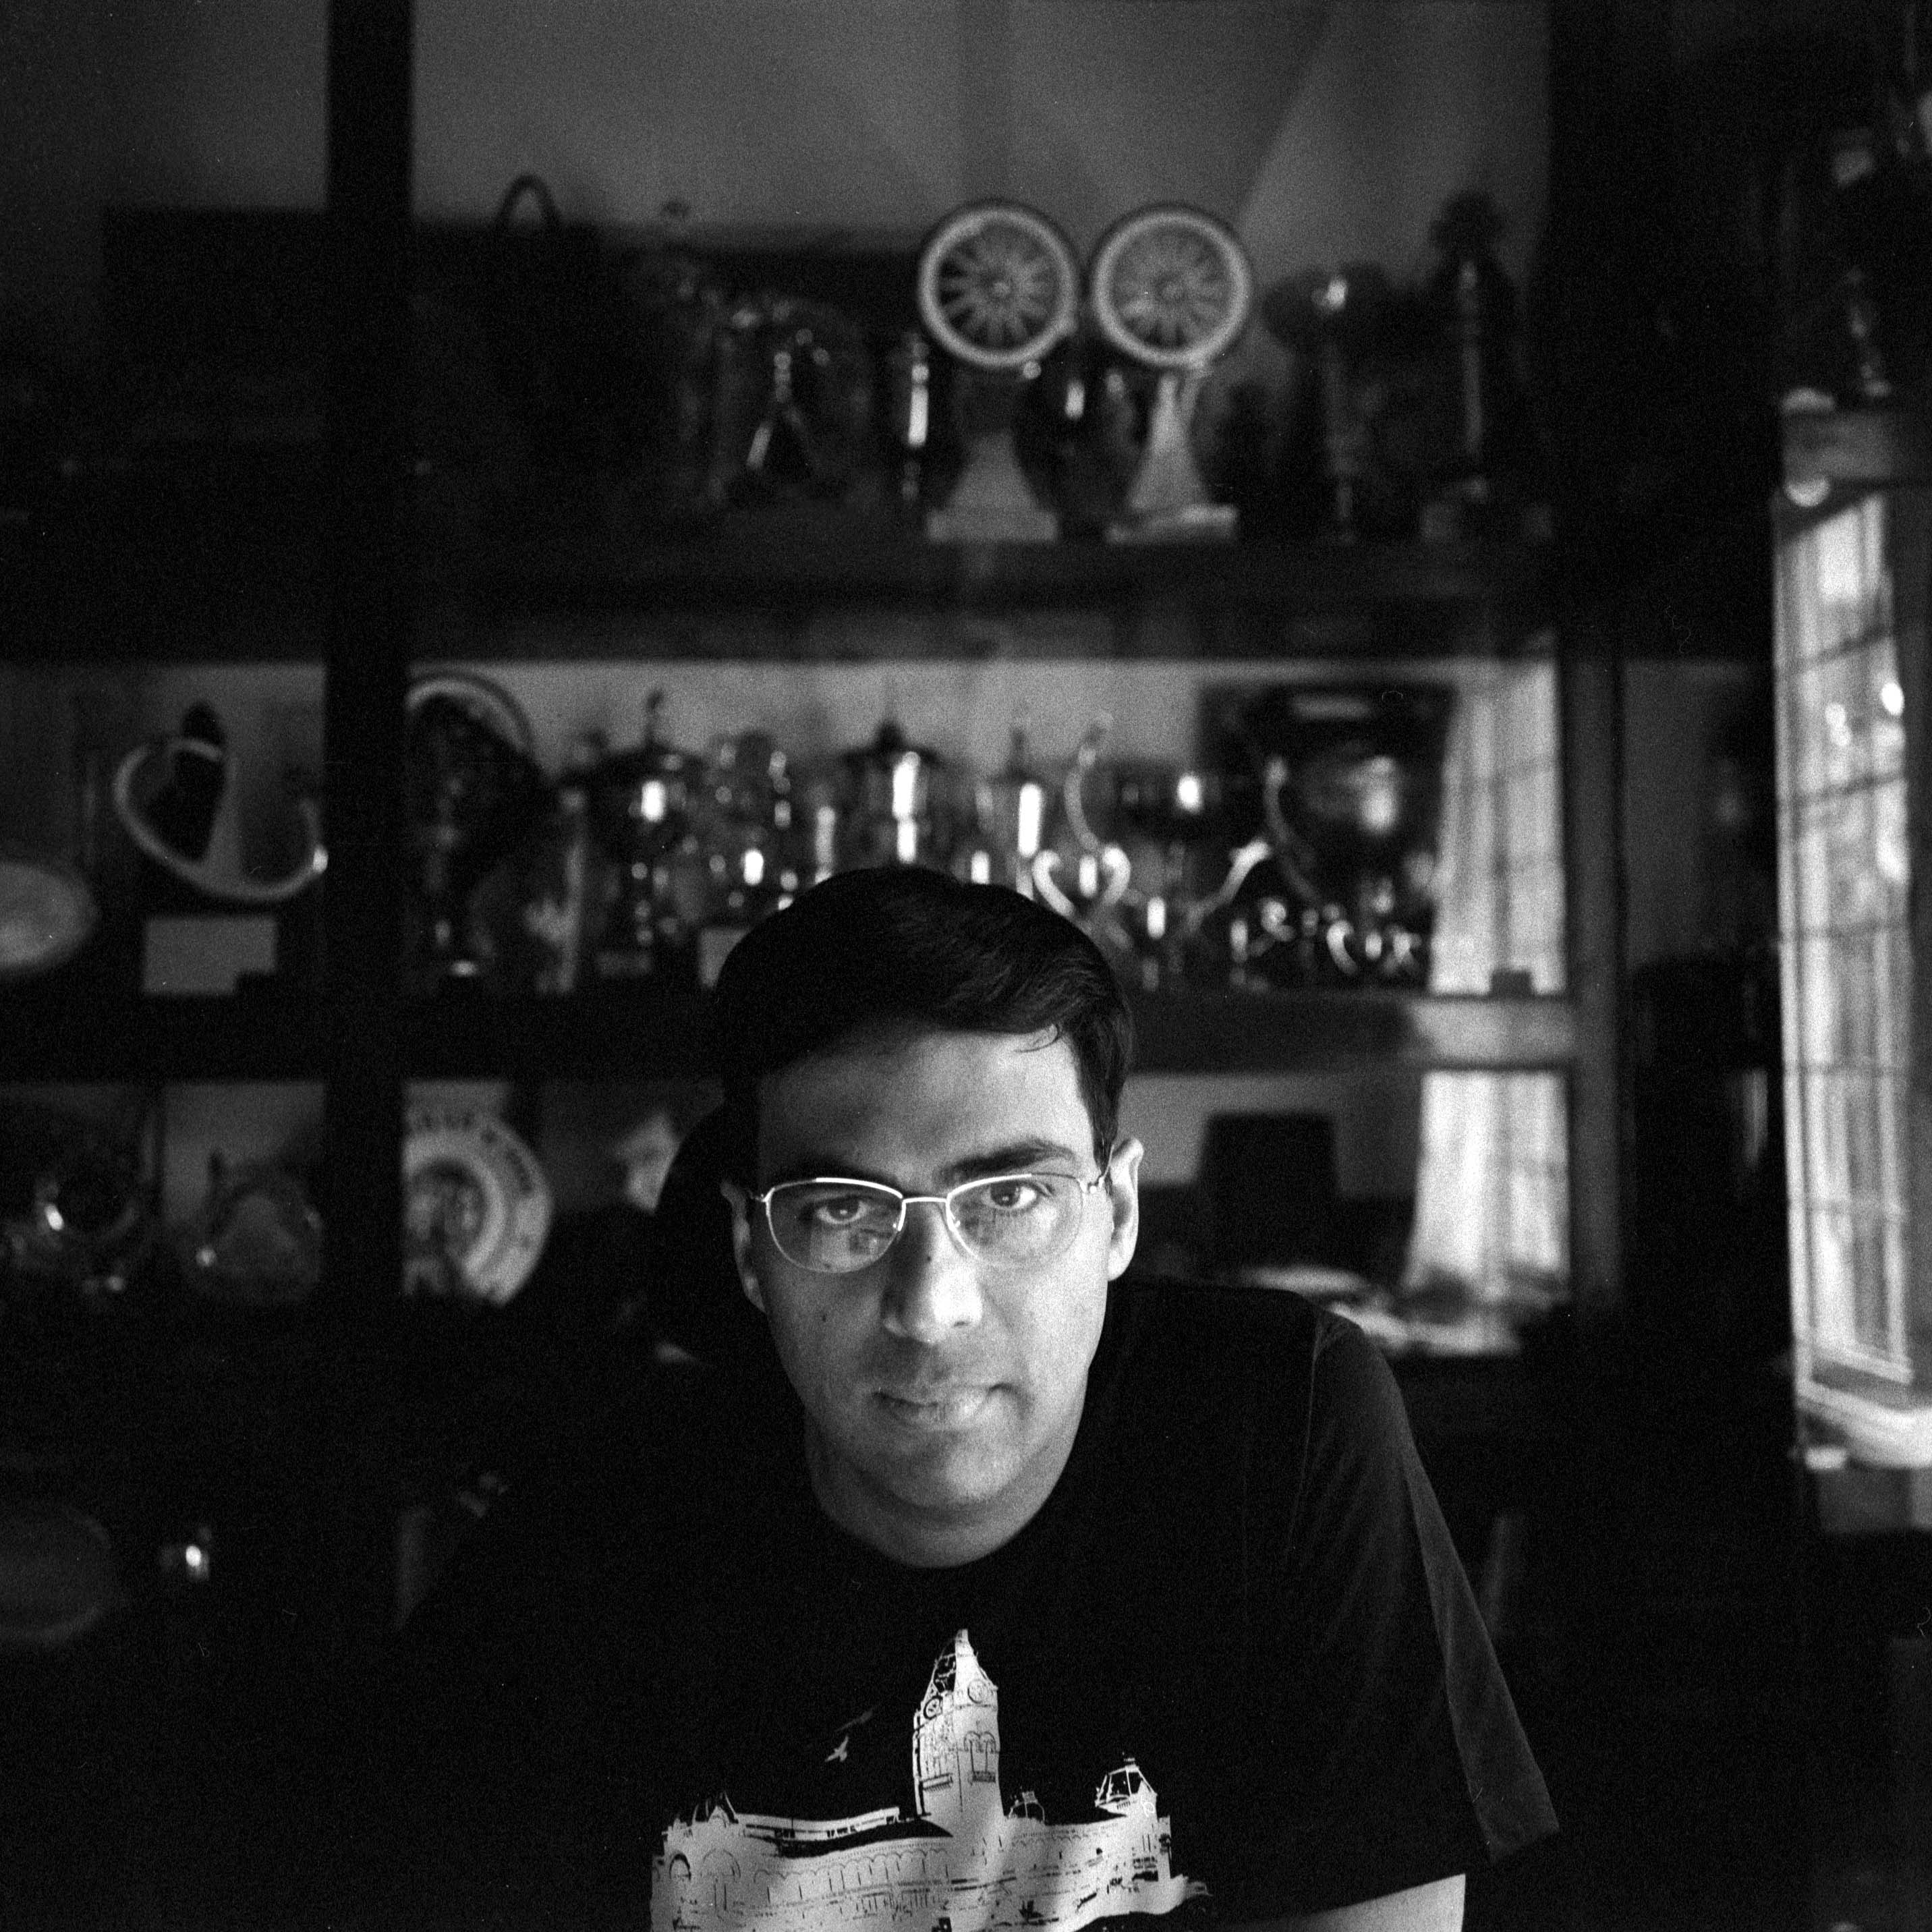 Viswanathan Anand in his office and trophy room at his home in Chennai, India. Current World Chess Champion, 43-year old Anand has been the undisputed champion since 2007. October 2013.